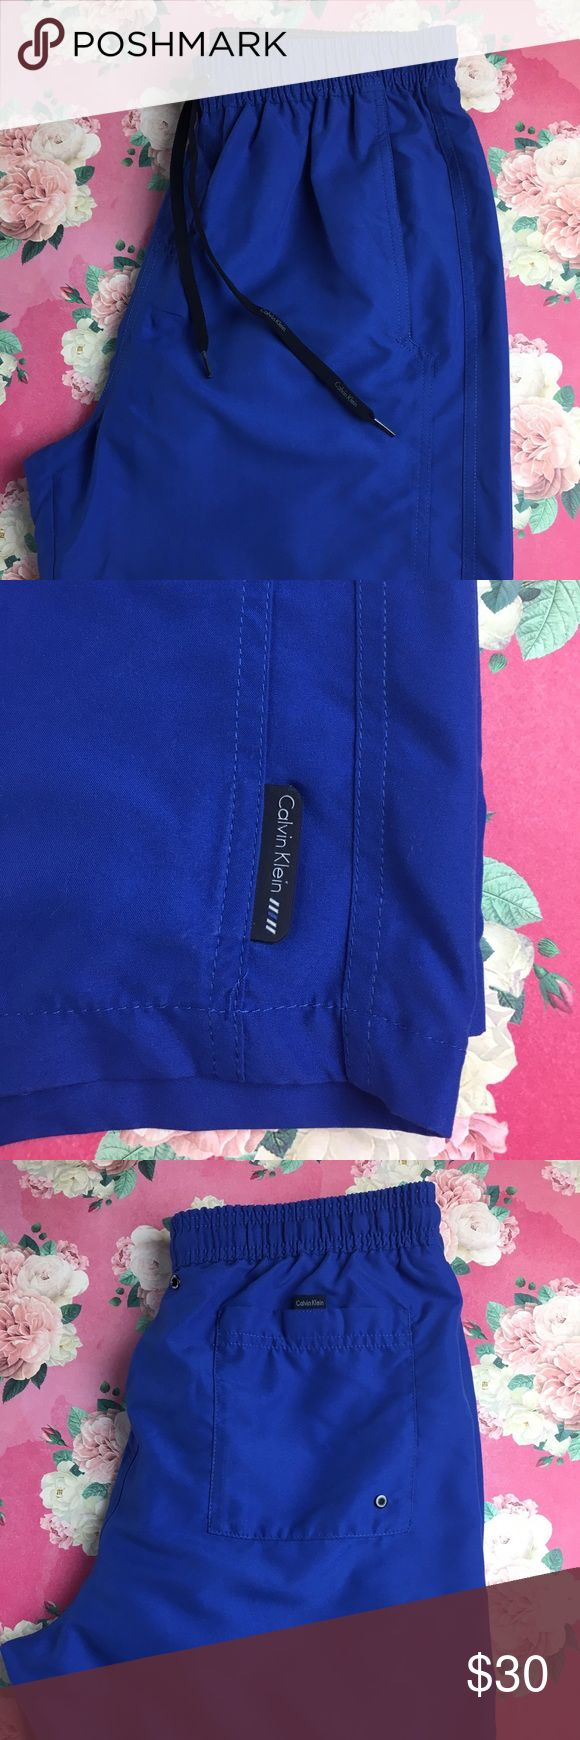 Calvin Klein Swim Shorts Size medium royal blue swim shorts. 19 in from waistband to bottom. One back pocket with Velcro closure. Two front pockets. ⭐️⭐️Bundle and save! Calvin Klein Swim Swim Trunks